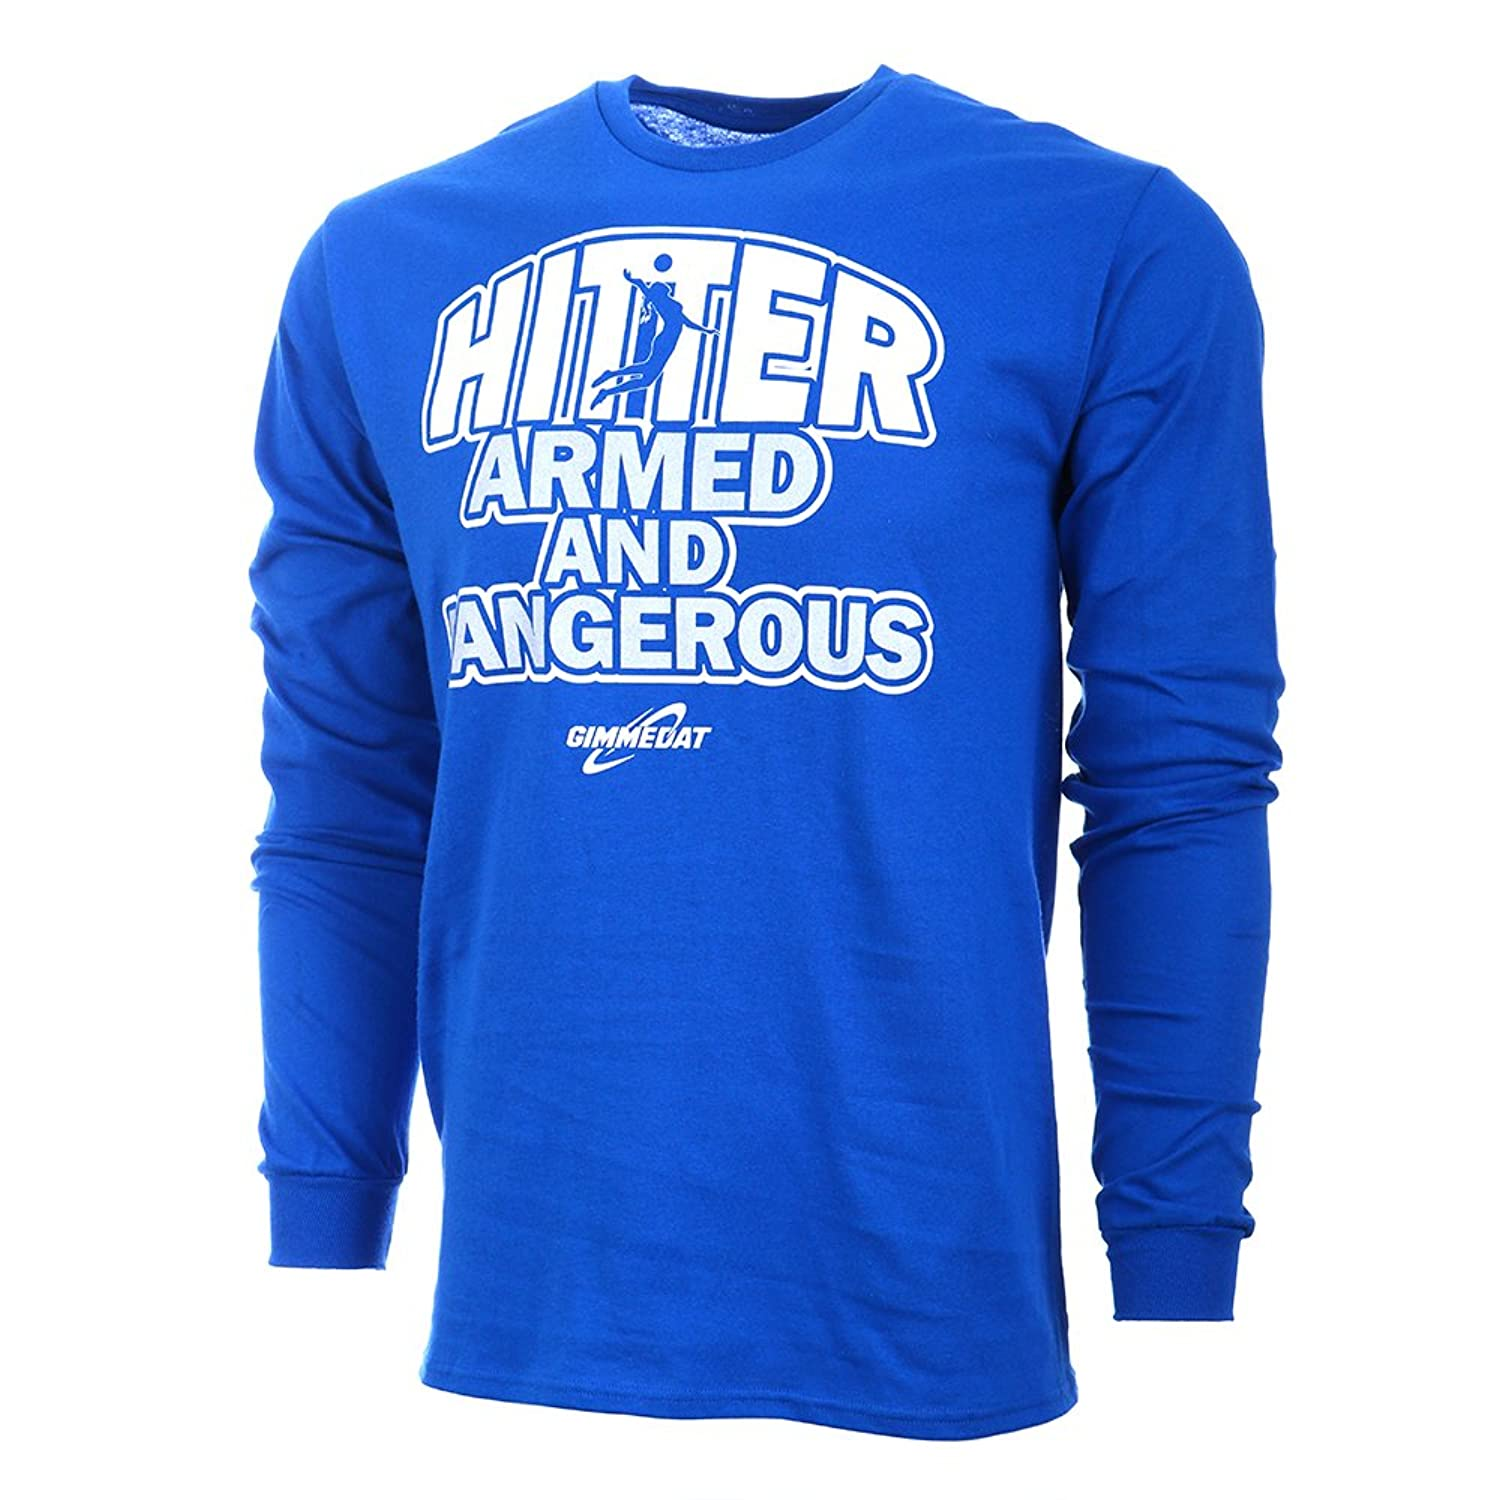 GIMMEDAT Hitter: Armed and Dangerous Long Sleeve Volleyball T-Shirt Royal Blue